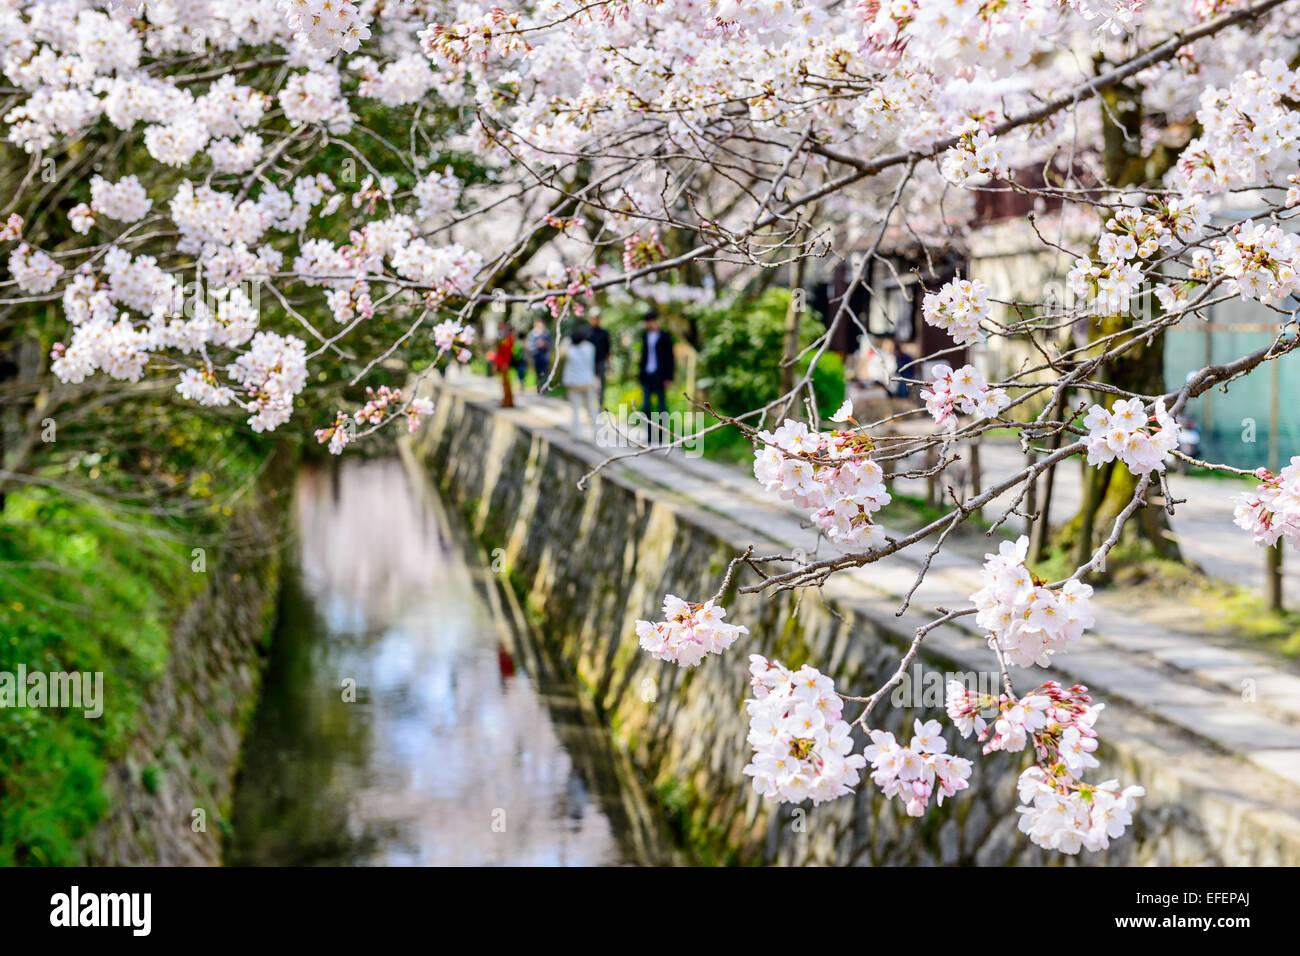 Kyoto, Japan at Philosopher's Walk in the Springtime. - Stock Image